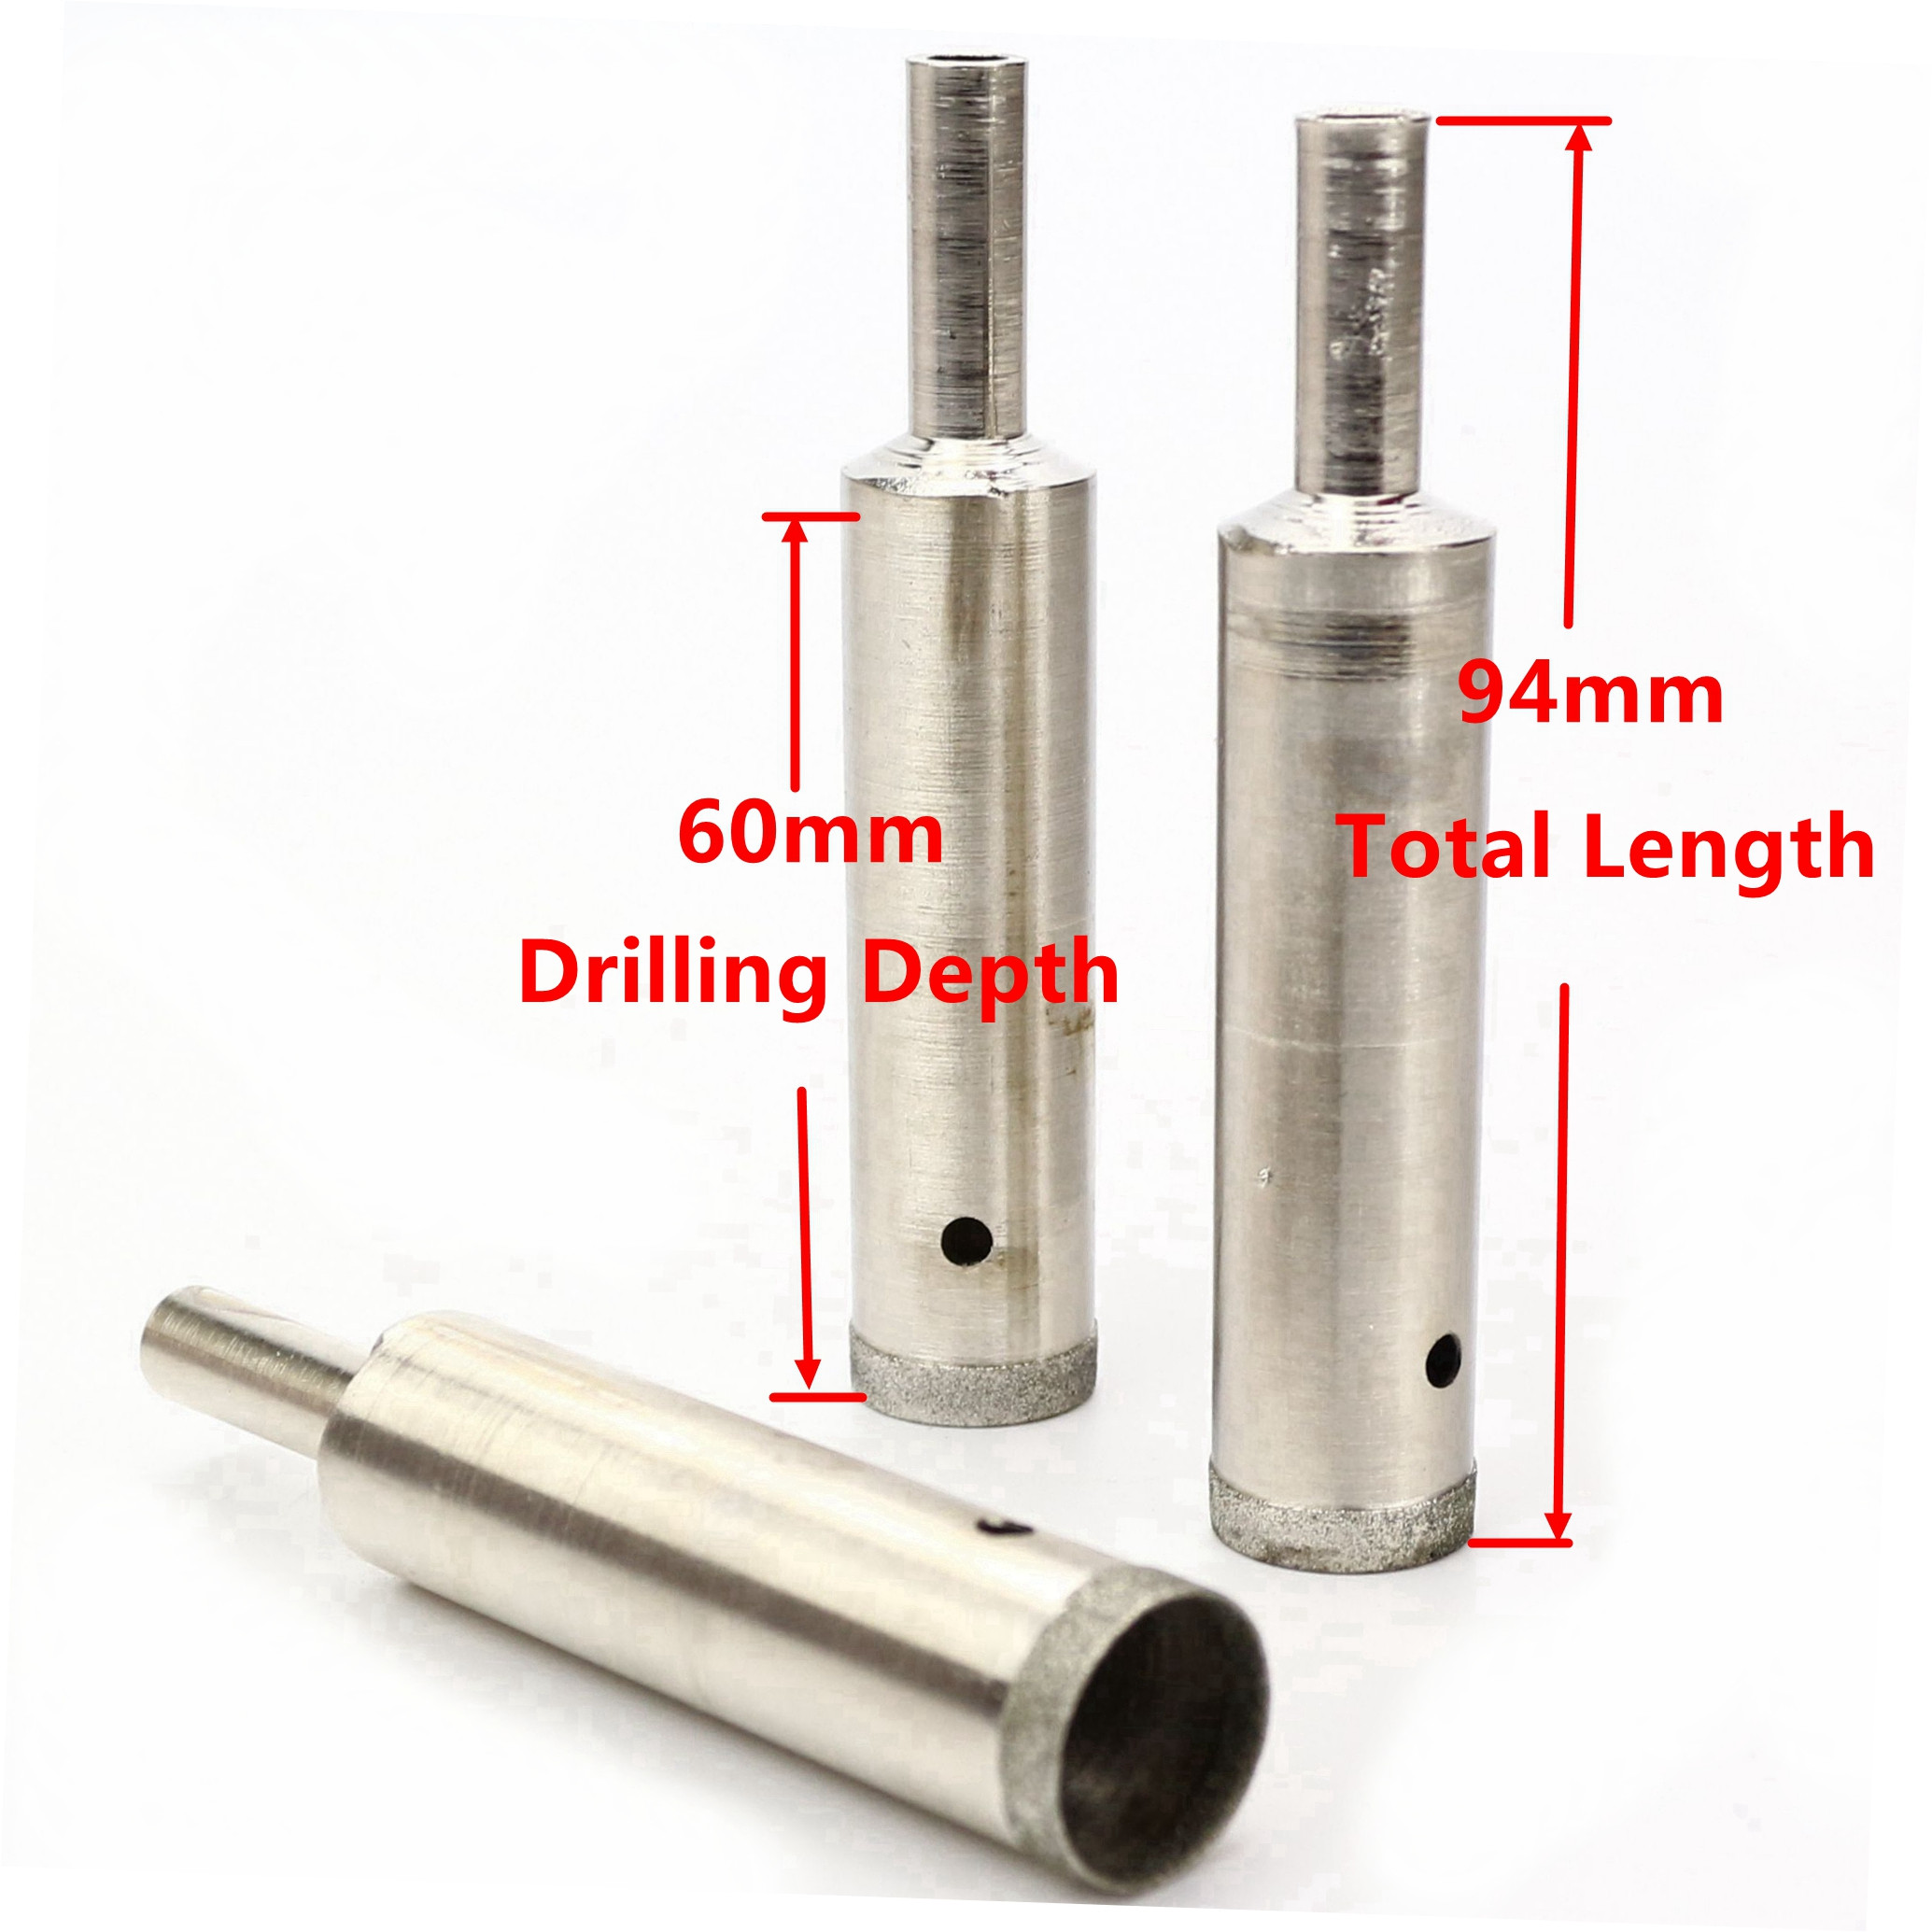 6-35mm Super-Thin Lapidary Diamond Hole Saw Extended Drill Bit Drilling Depth 60mm Tools For Stone Gemstone Glass